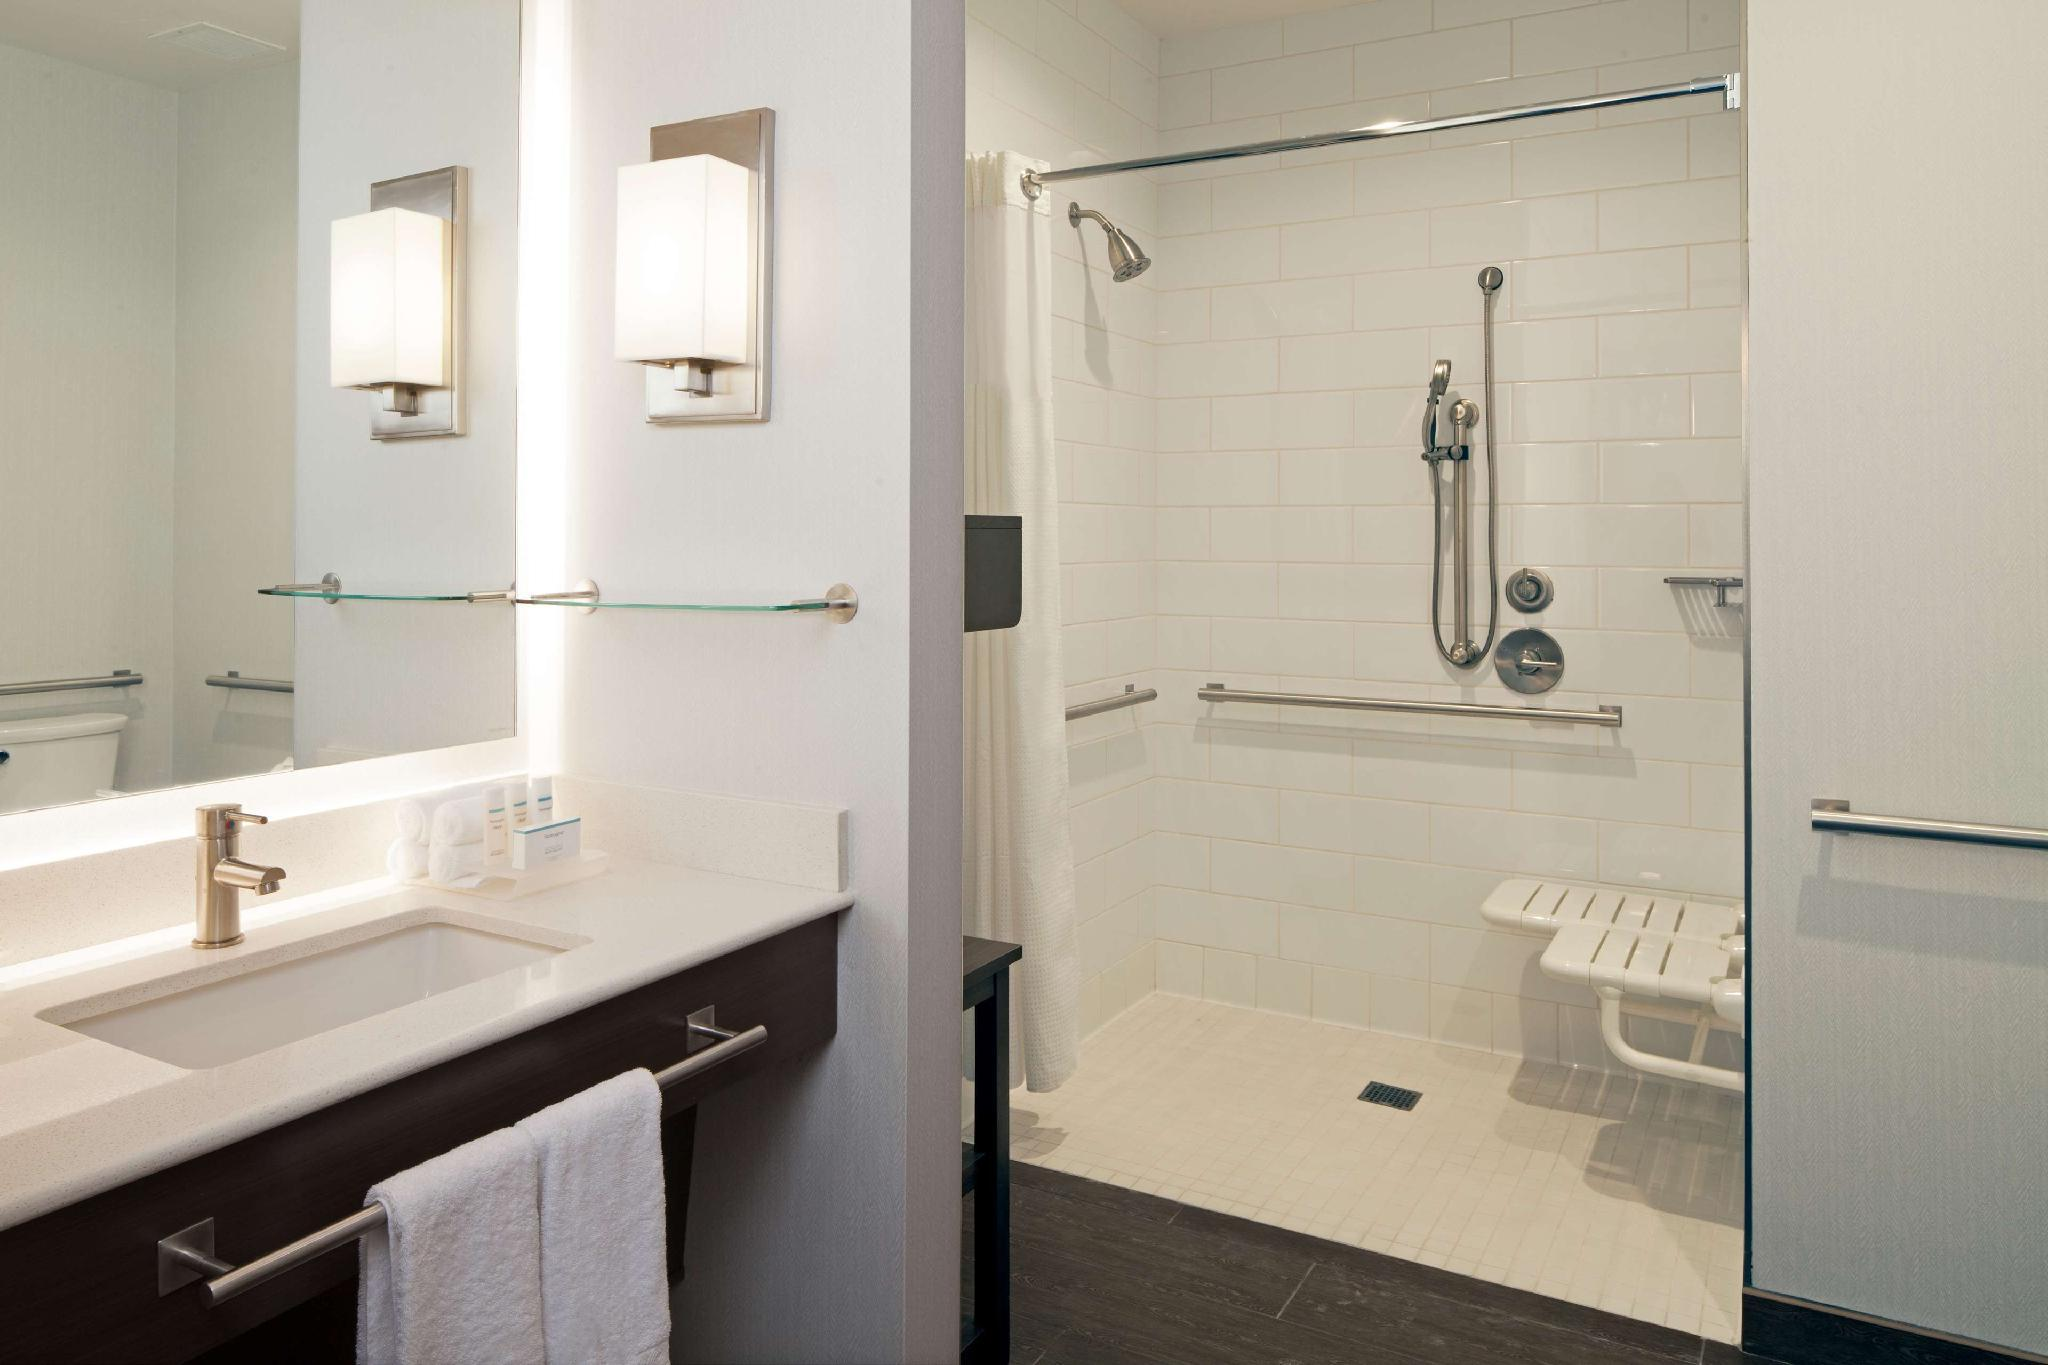 2 Bedroom 1 King or 2 Double Accessible Roll in Shower